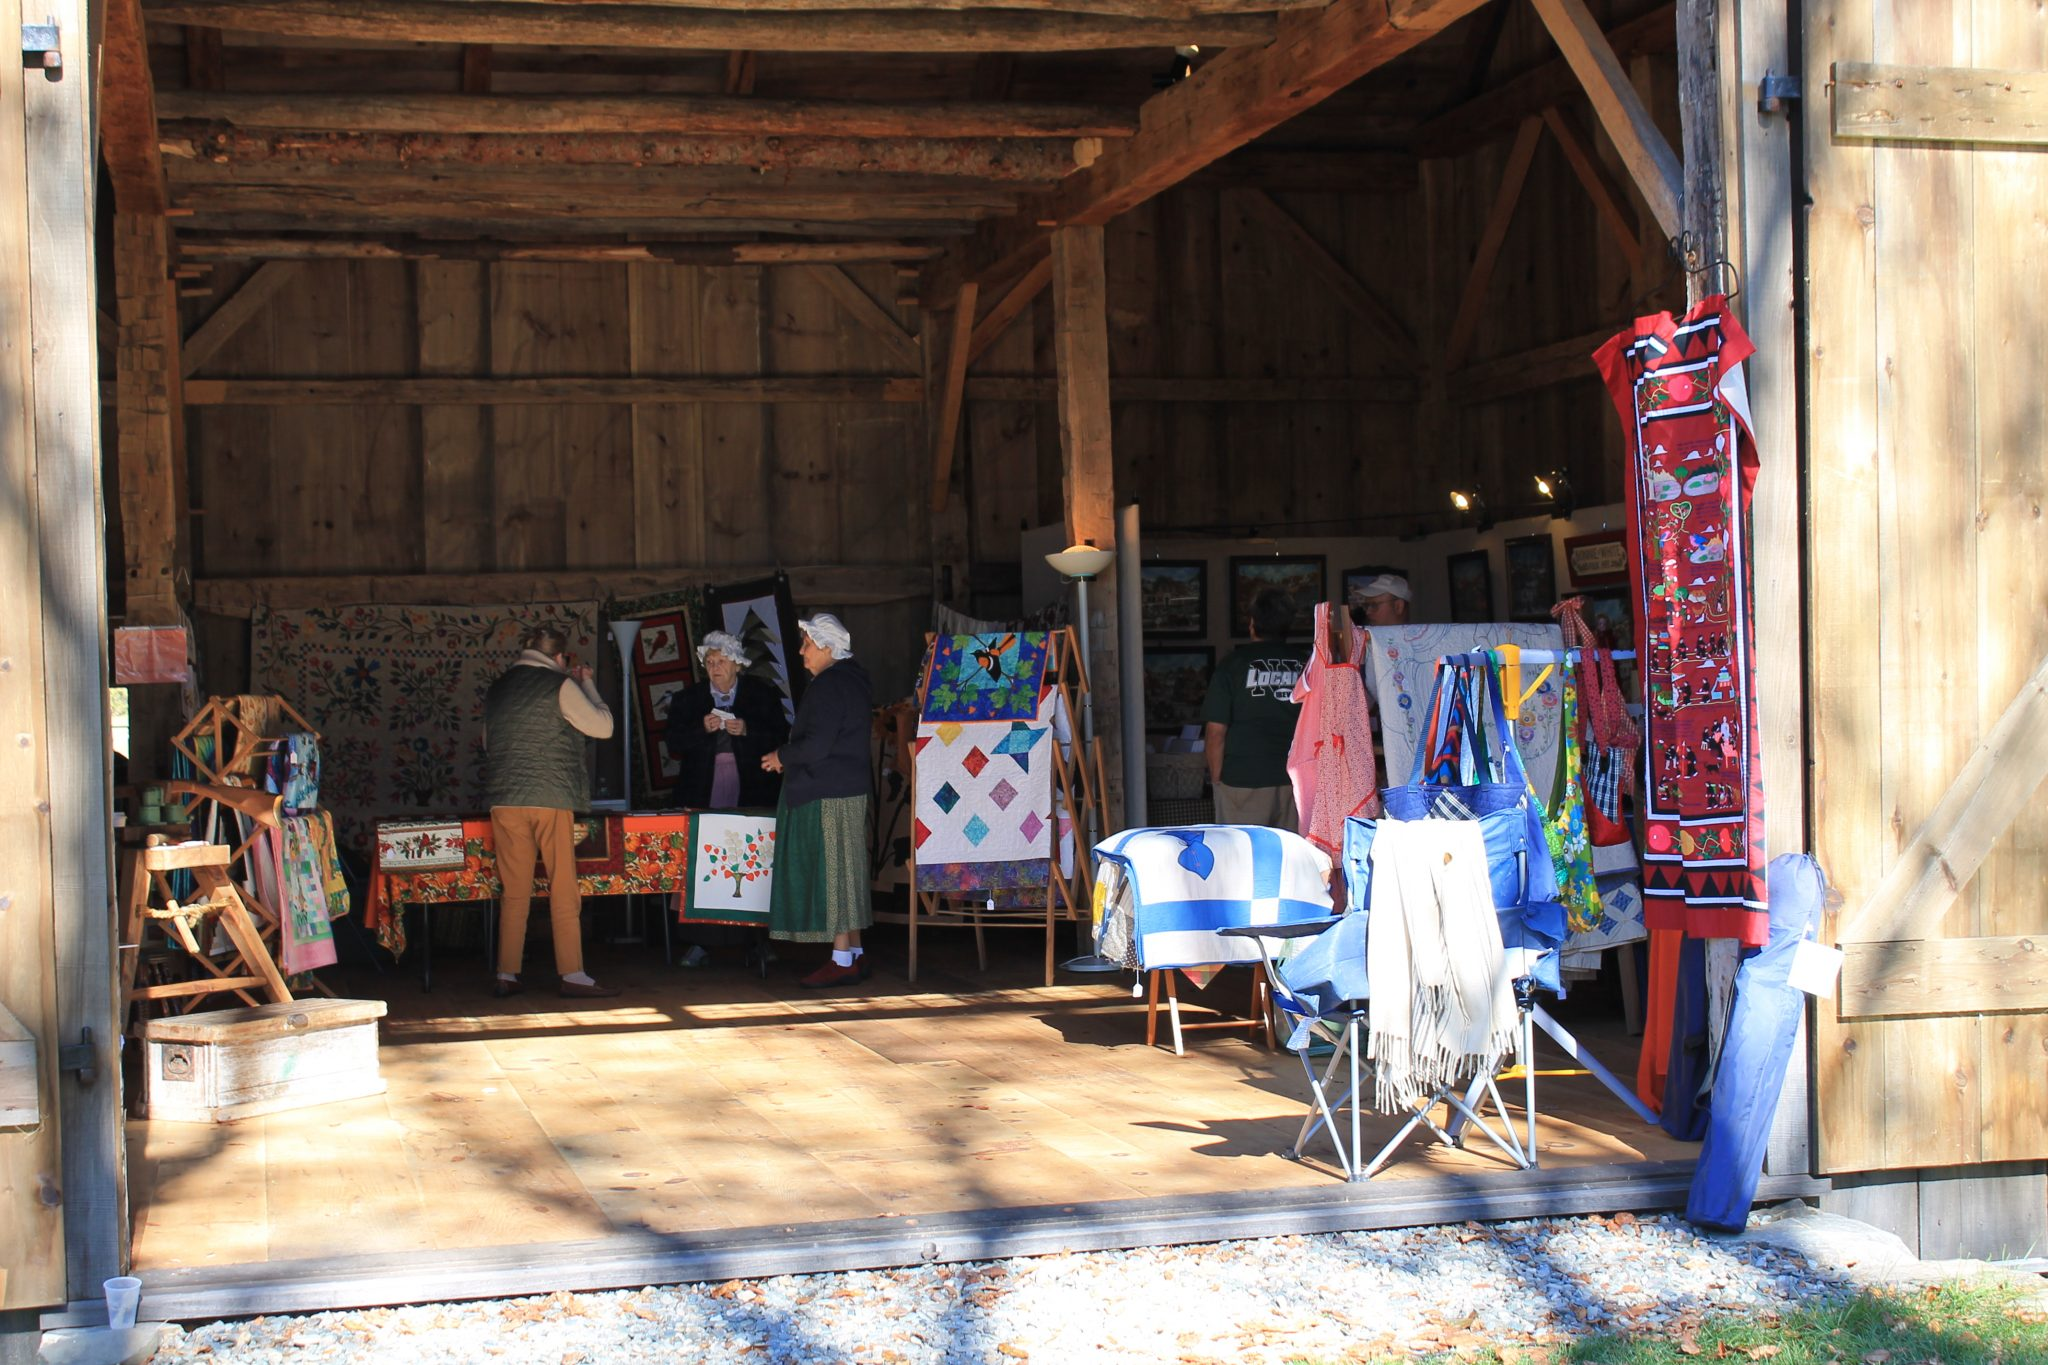 Vendors in the Barn